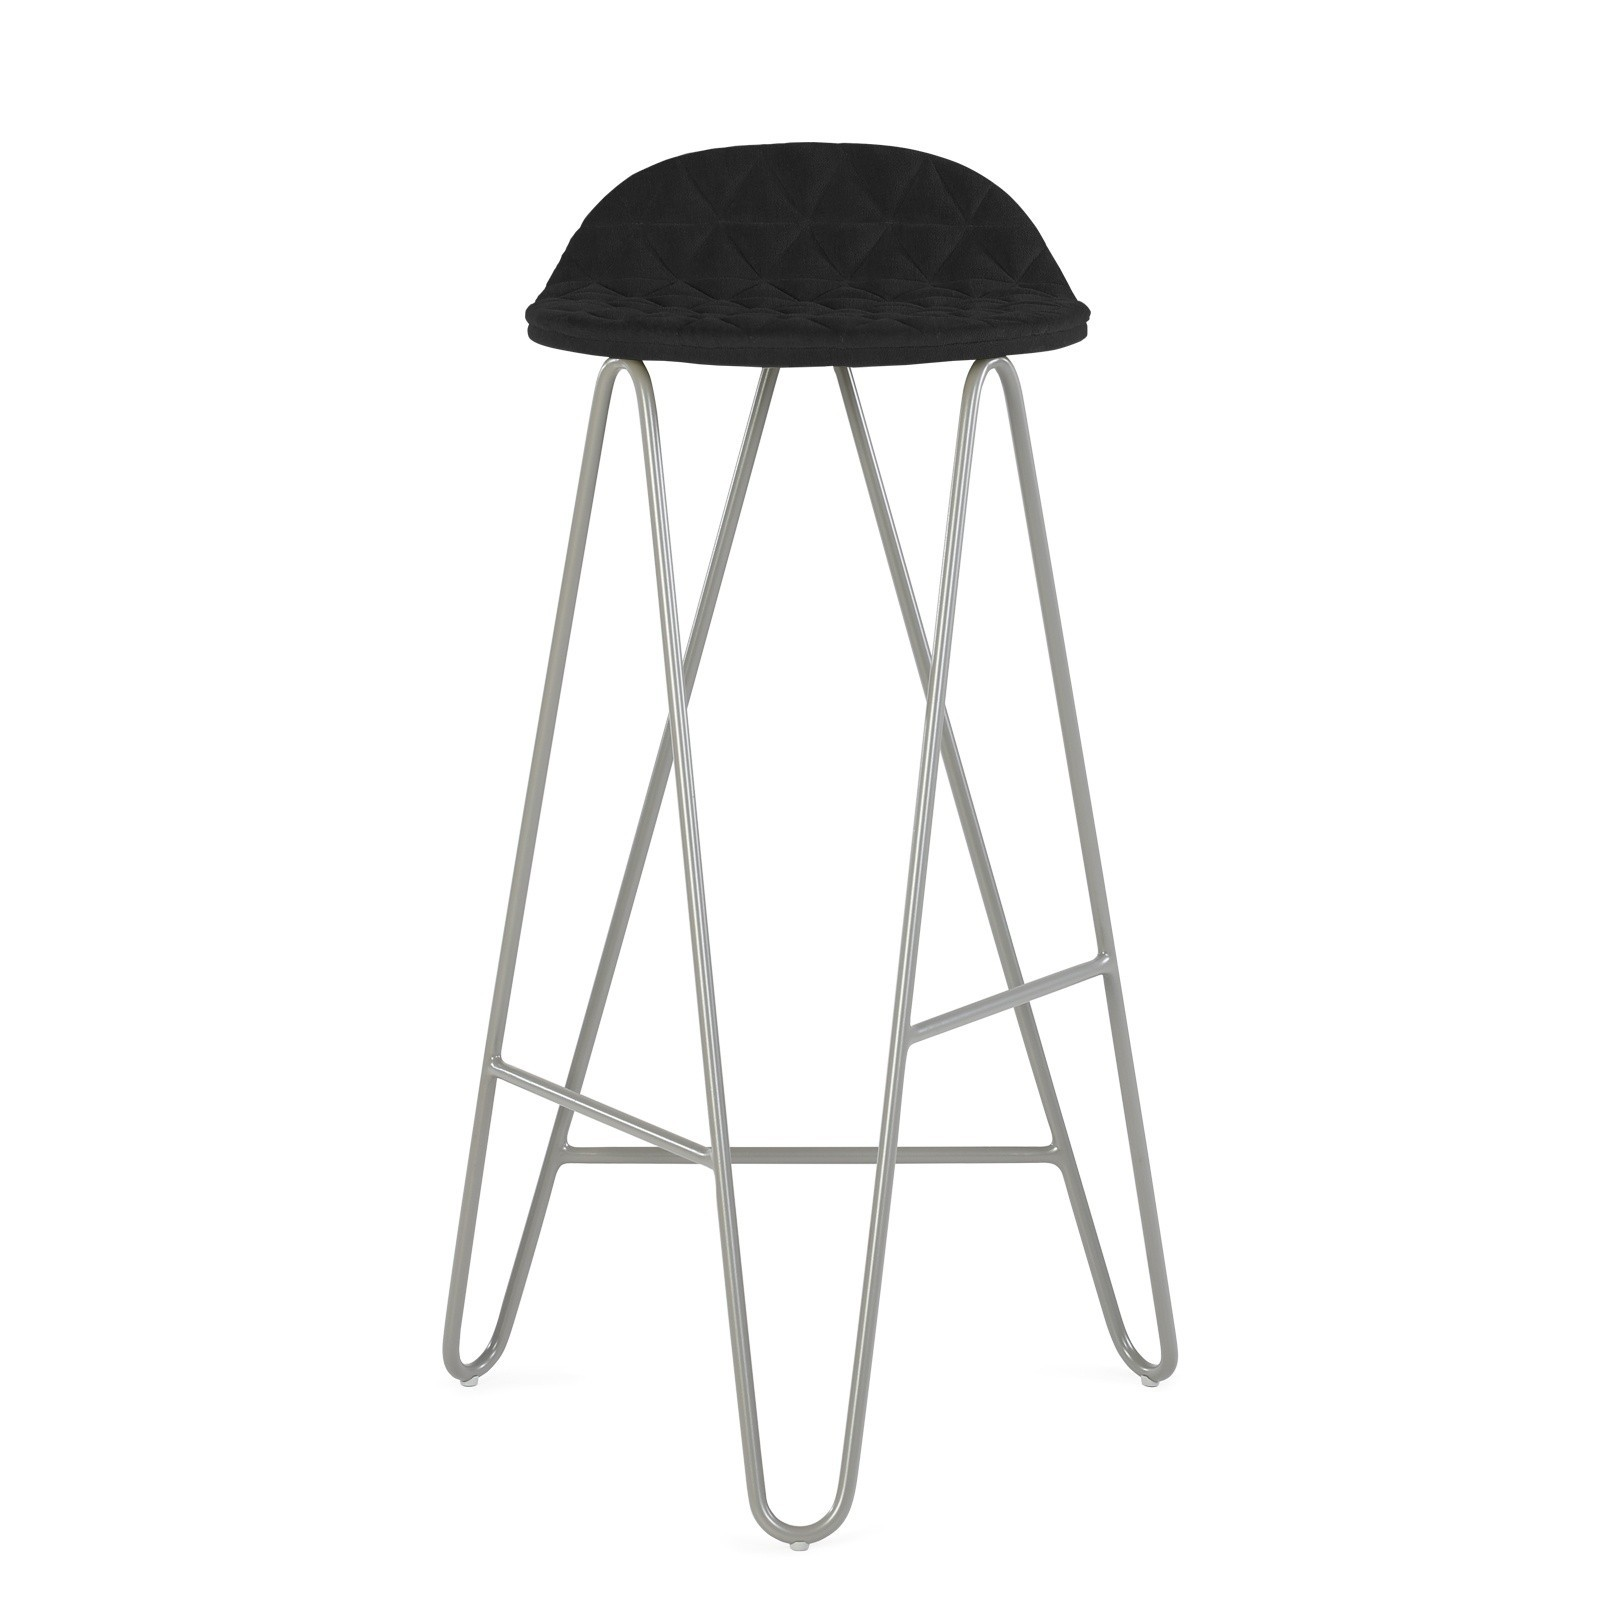 Mannequin Bar 02 Chair Black Ikershopcom